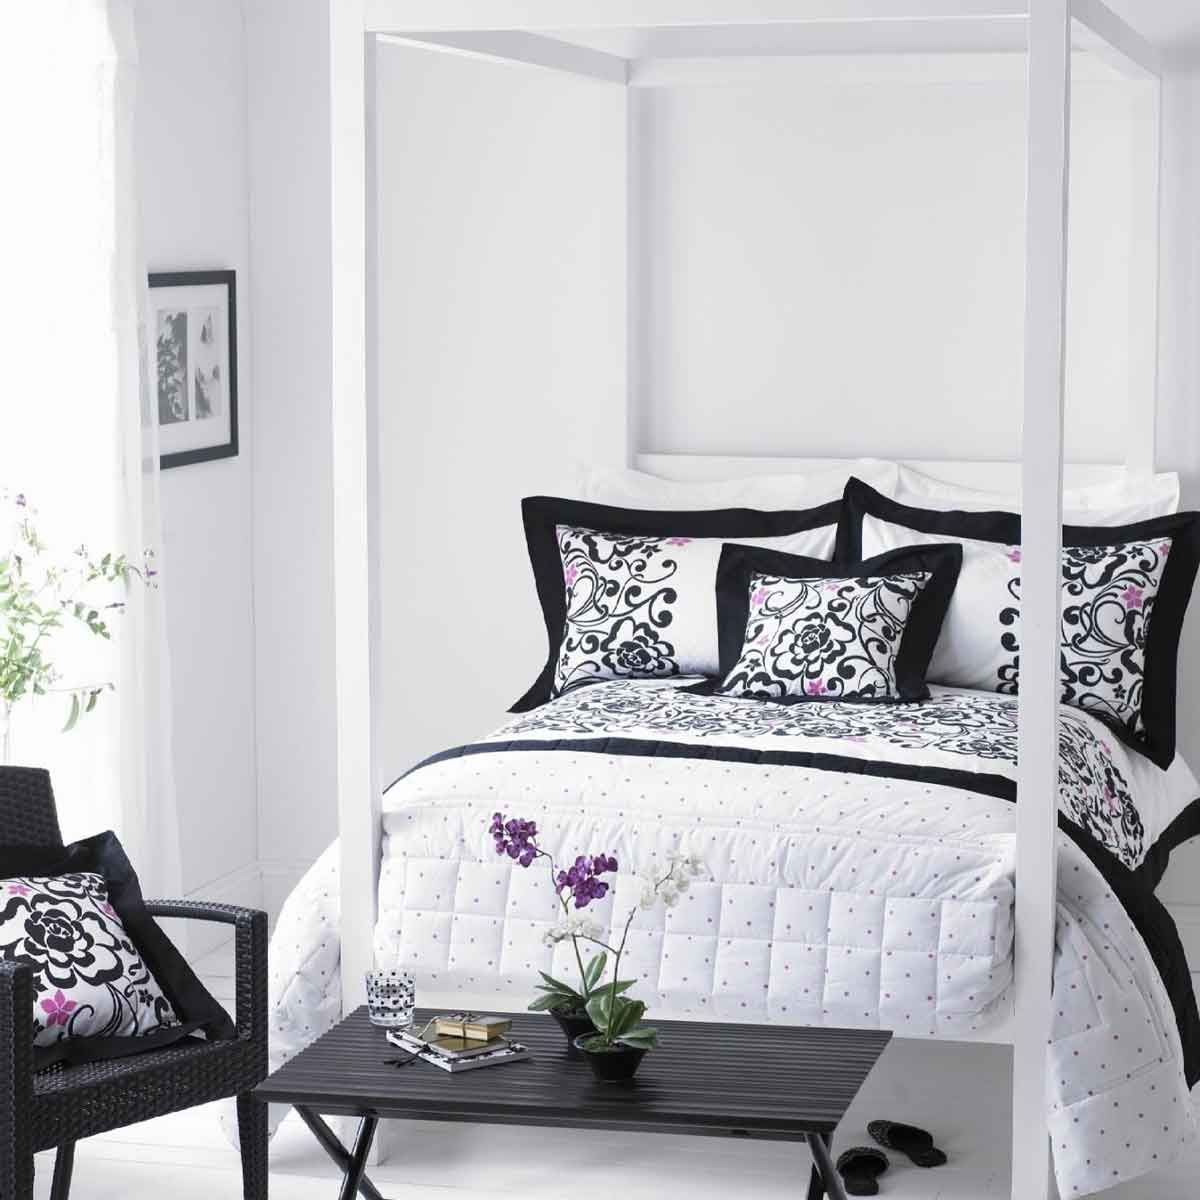 Simple Bedroom Color Ideas Part - 19: Black And White Bedroom.